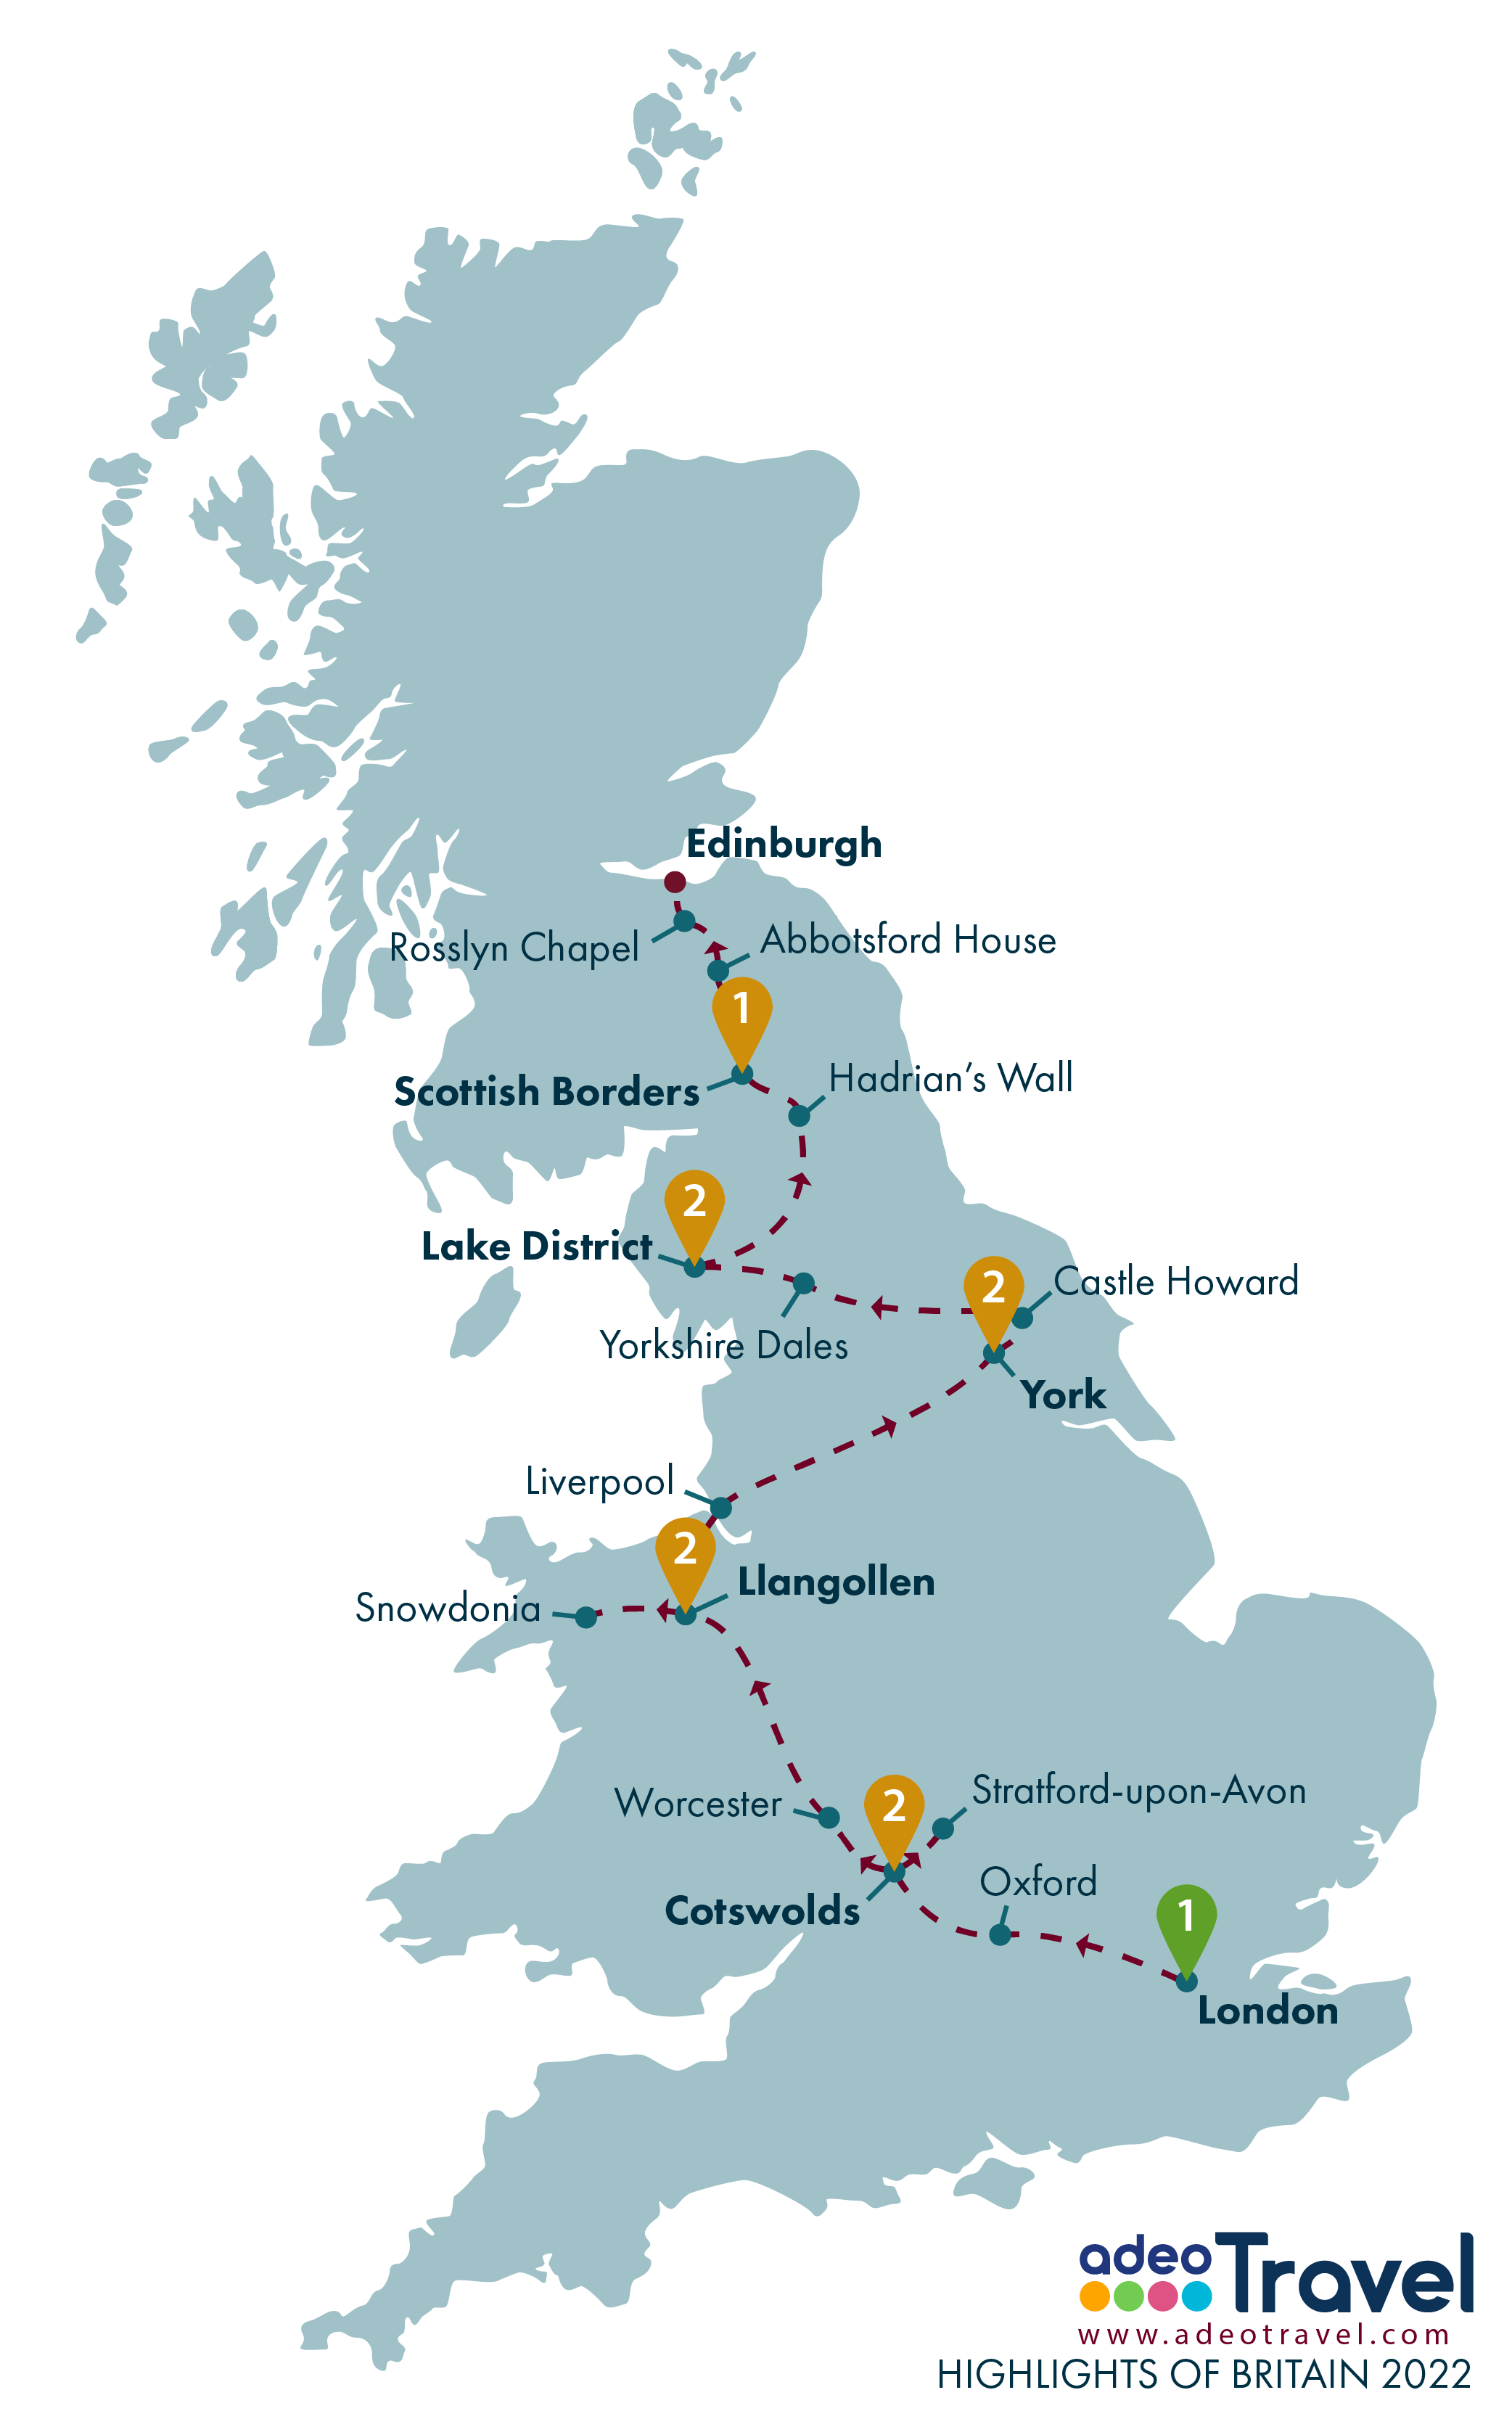 Map - Highlights of Britain 2022